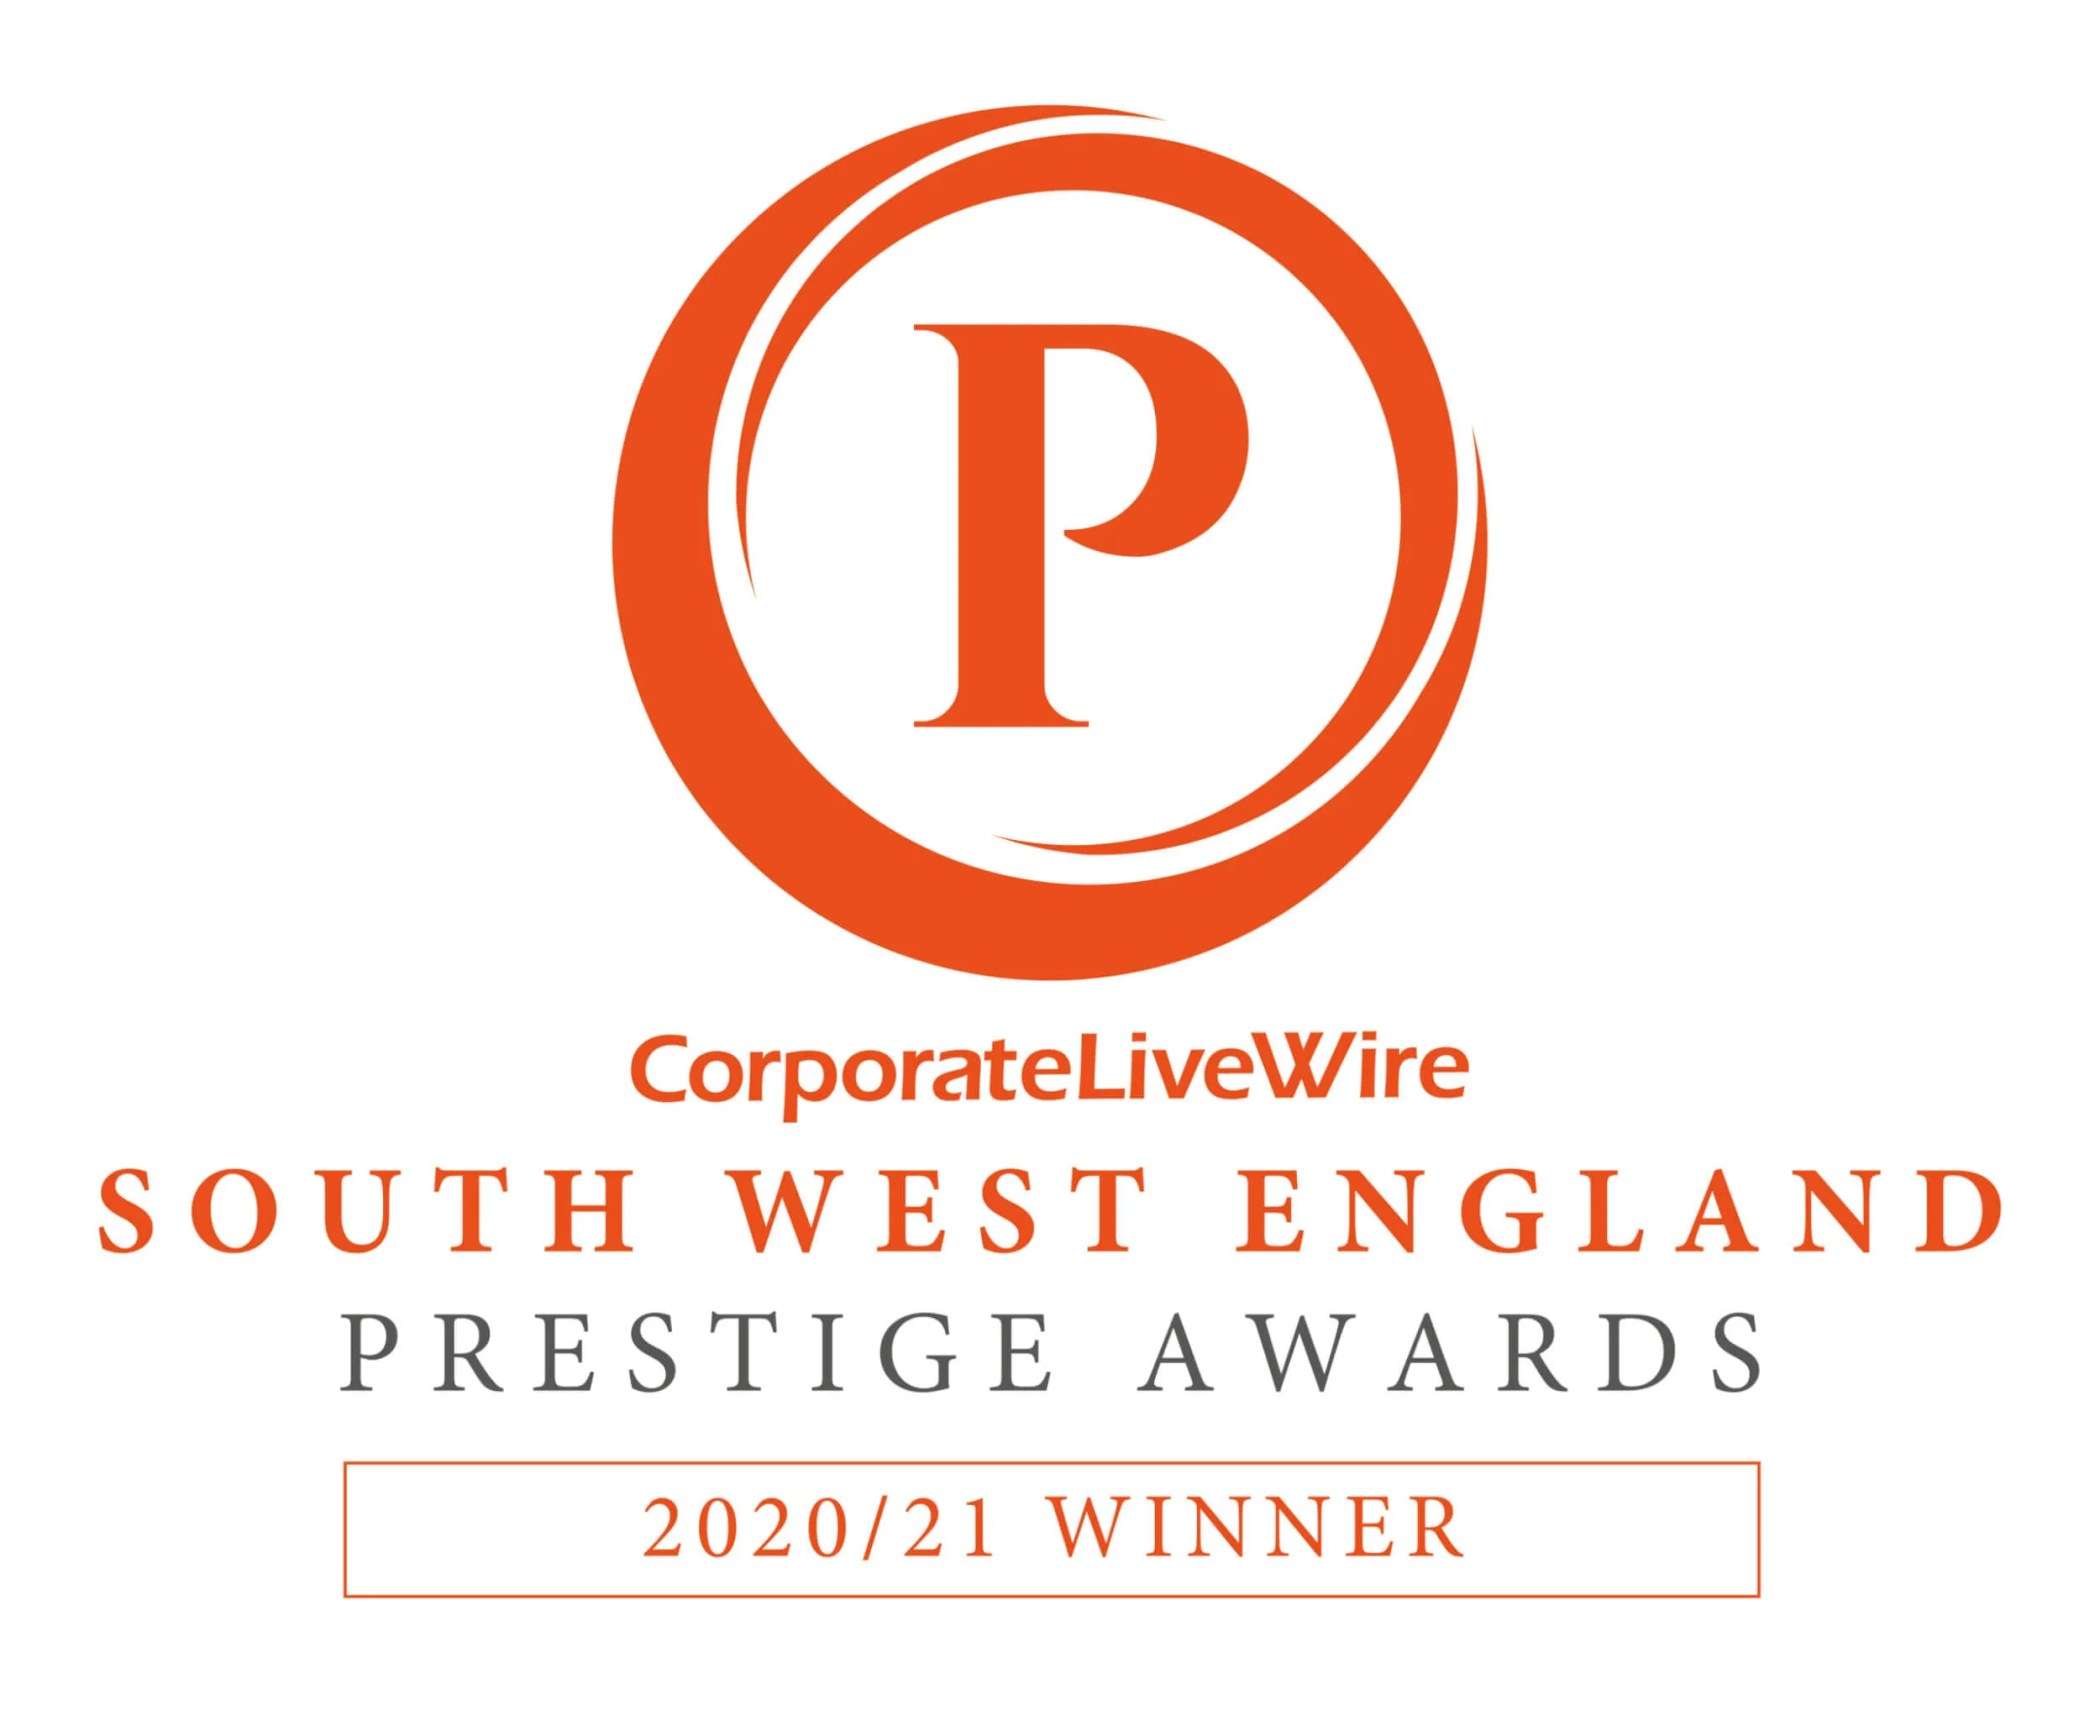 Prestige Awards Winner 20/21